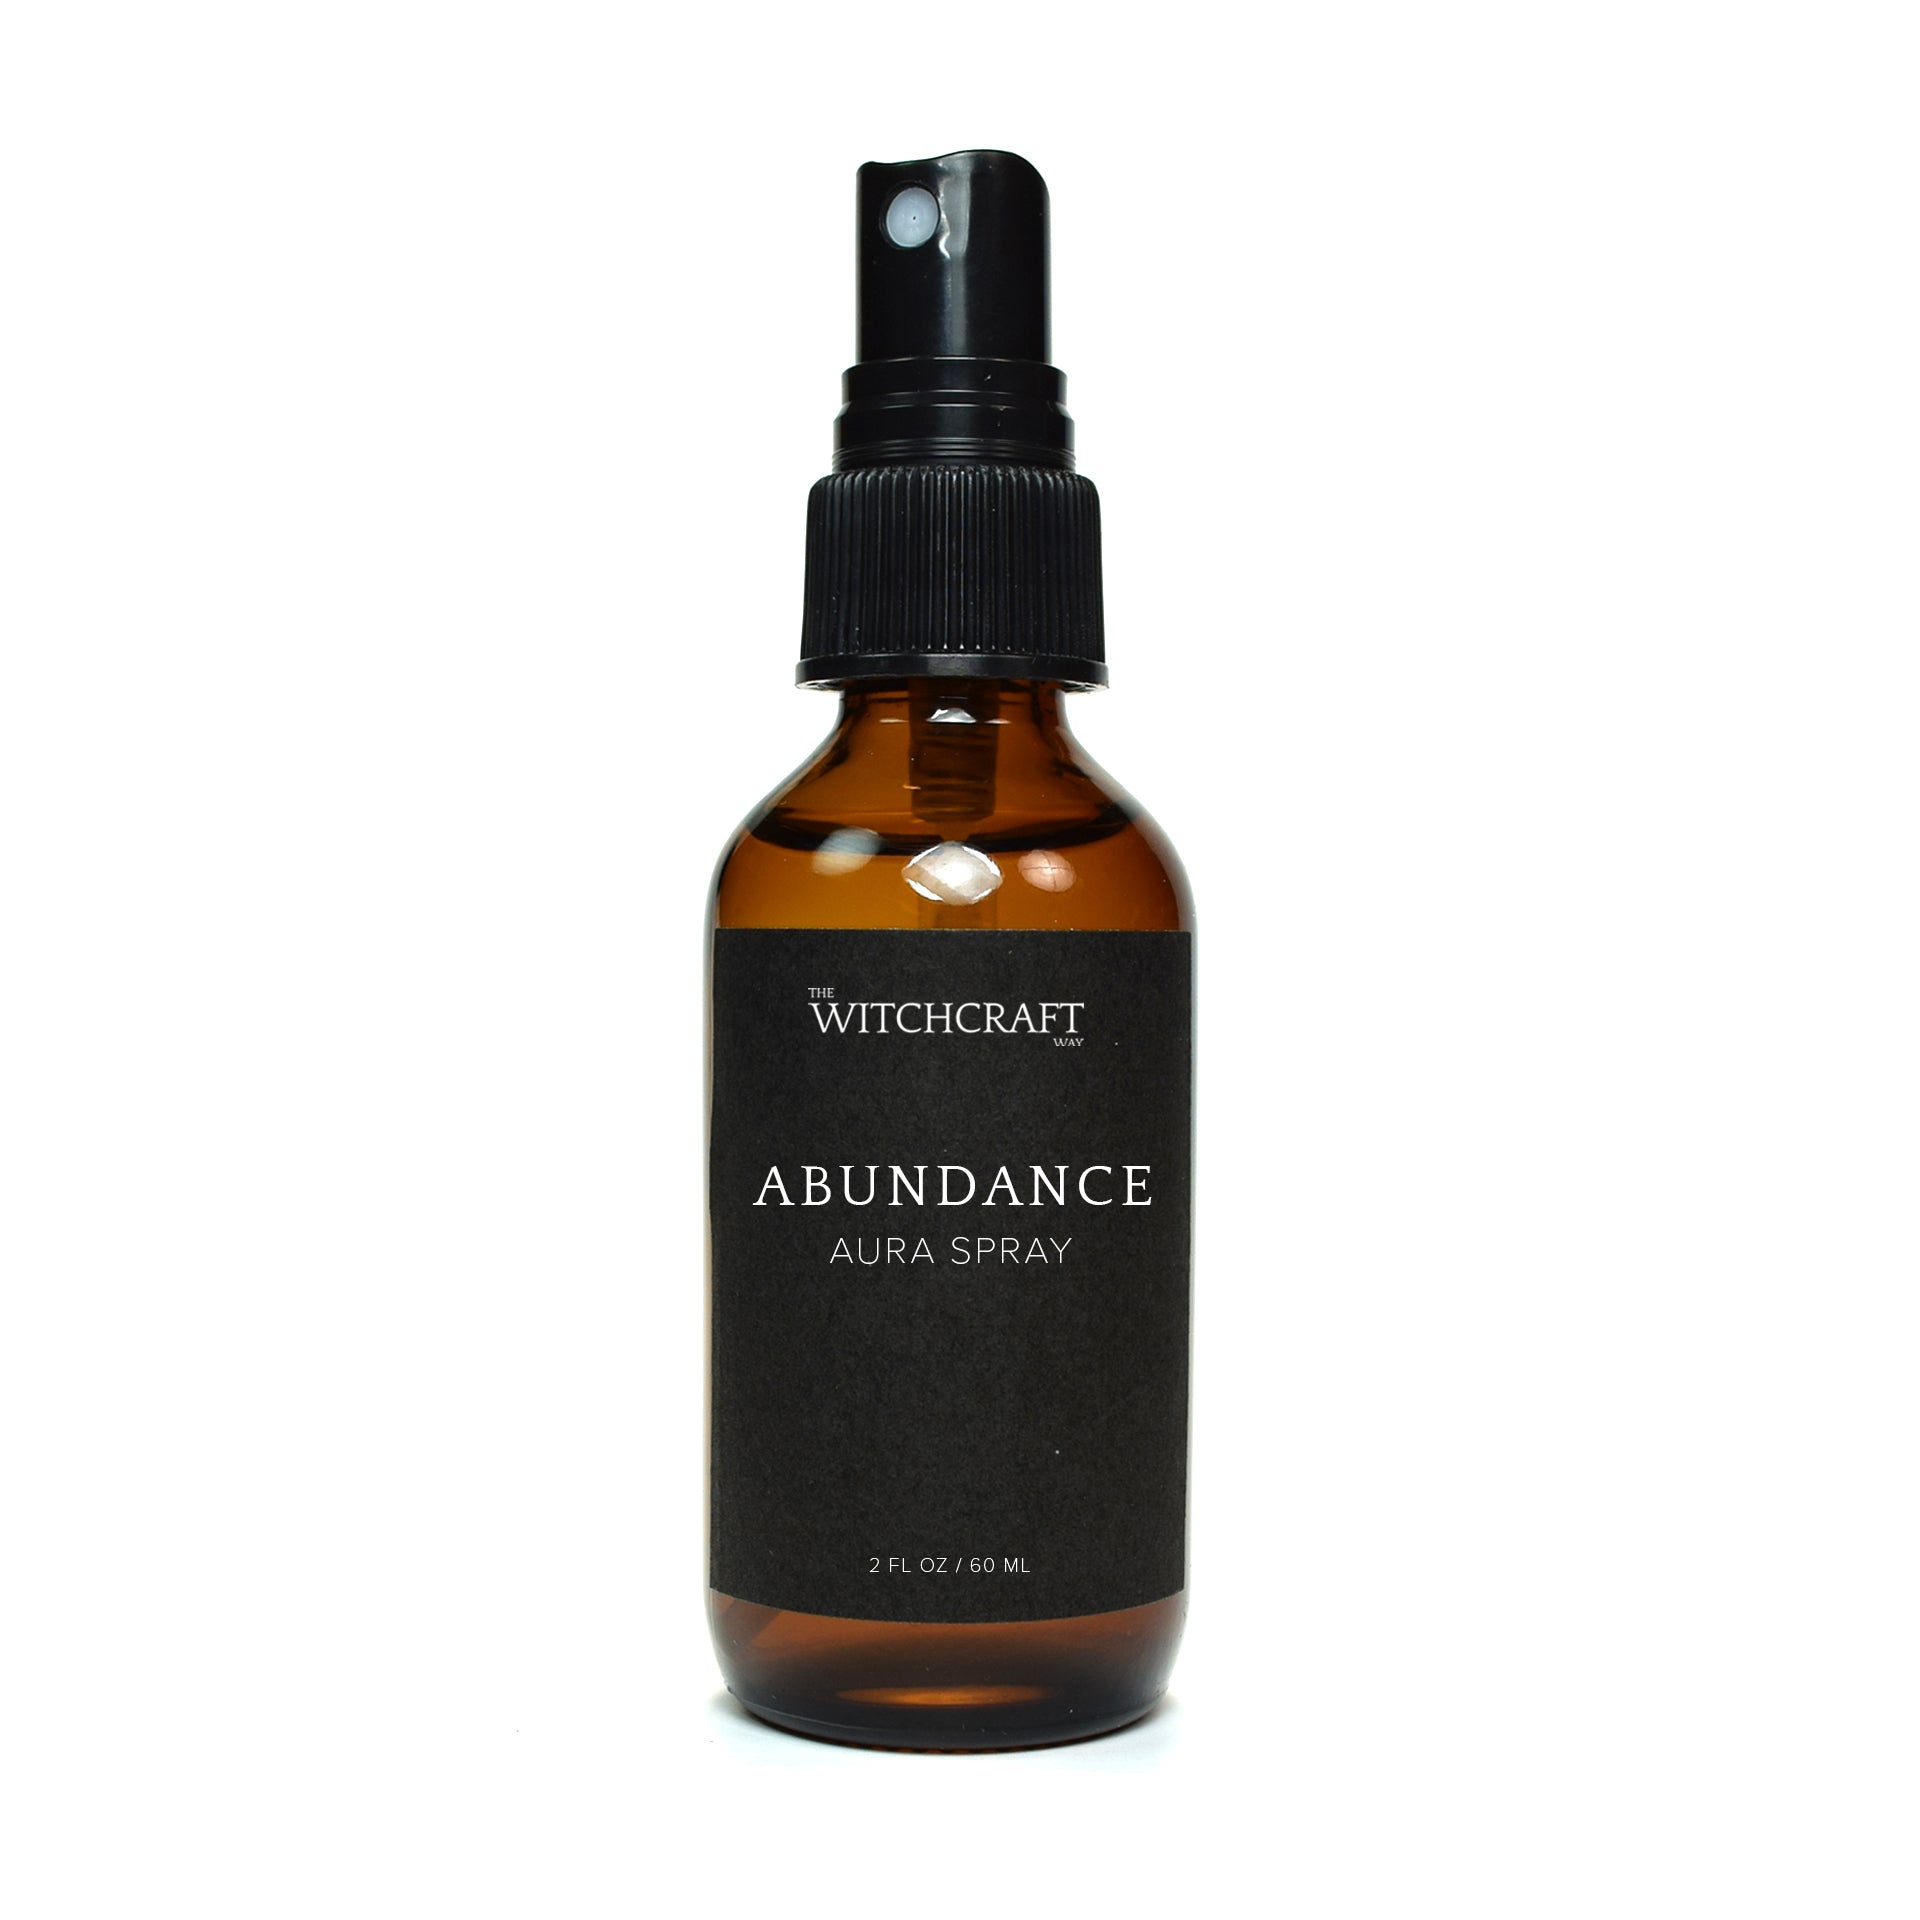 Abundance Aura Spray